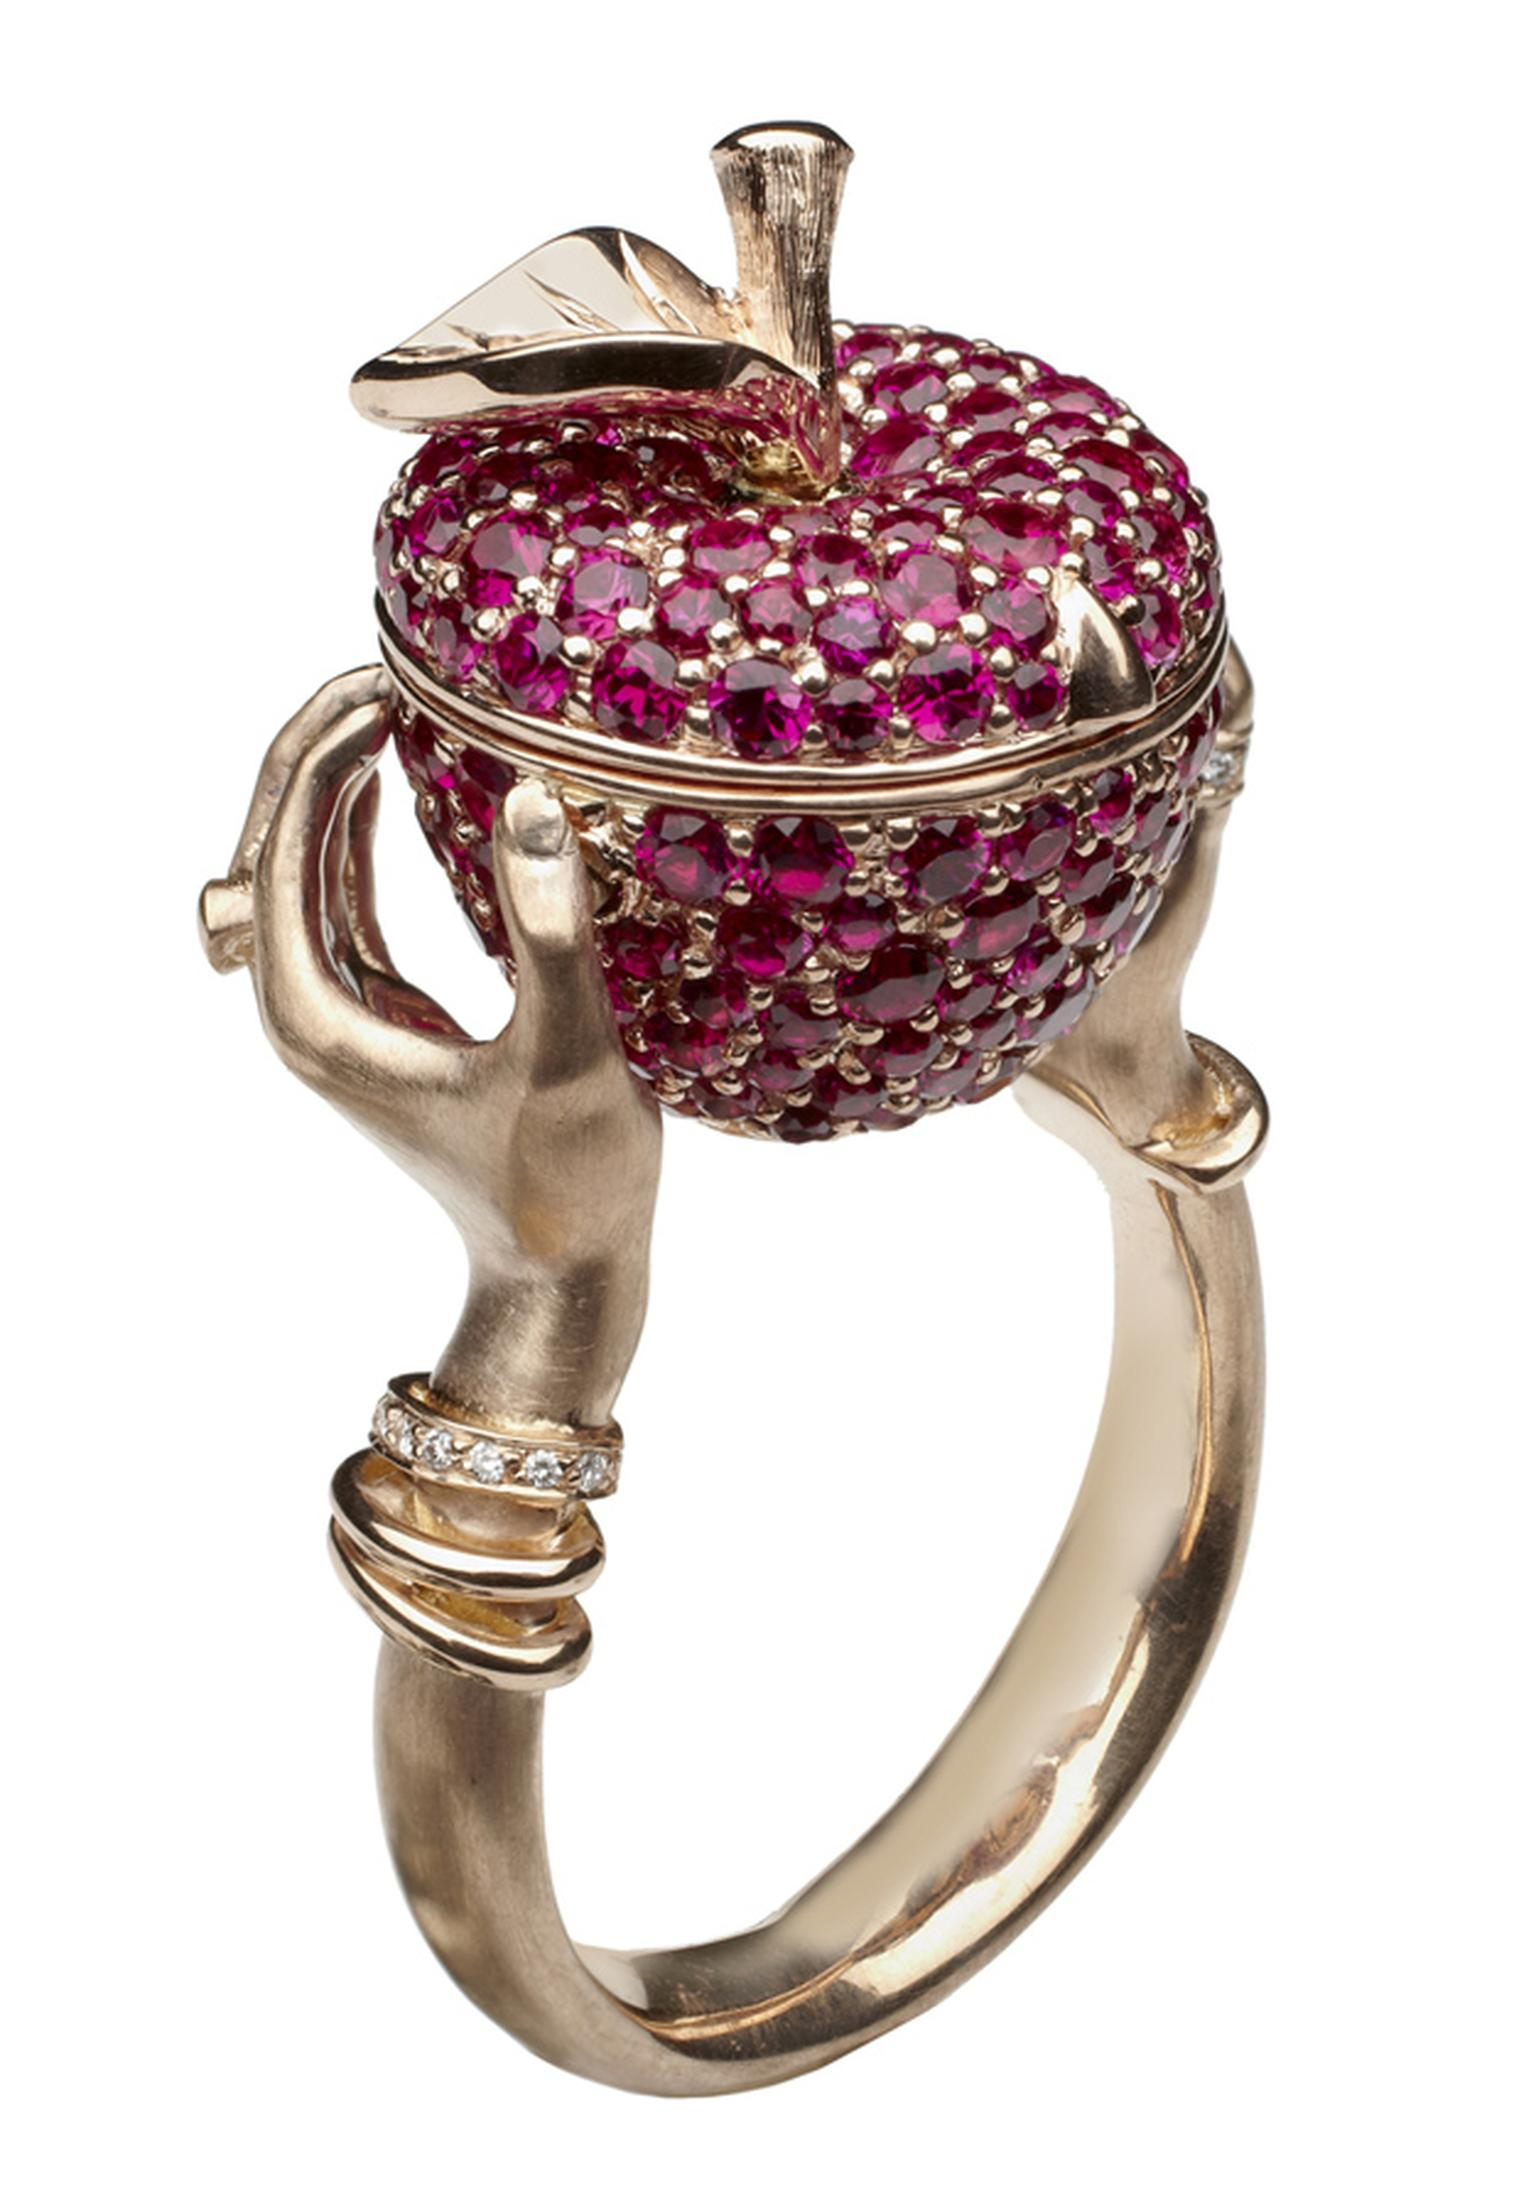 Stephen Webster. Murder She Wrote Poison Apple Ring